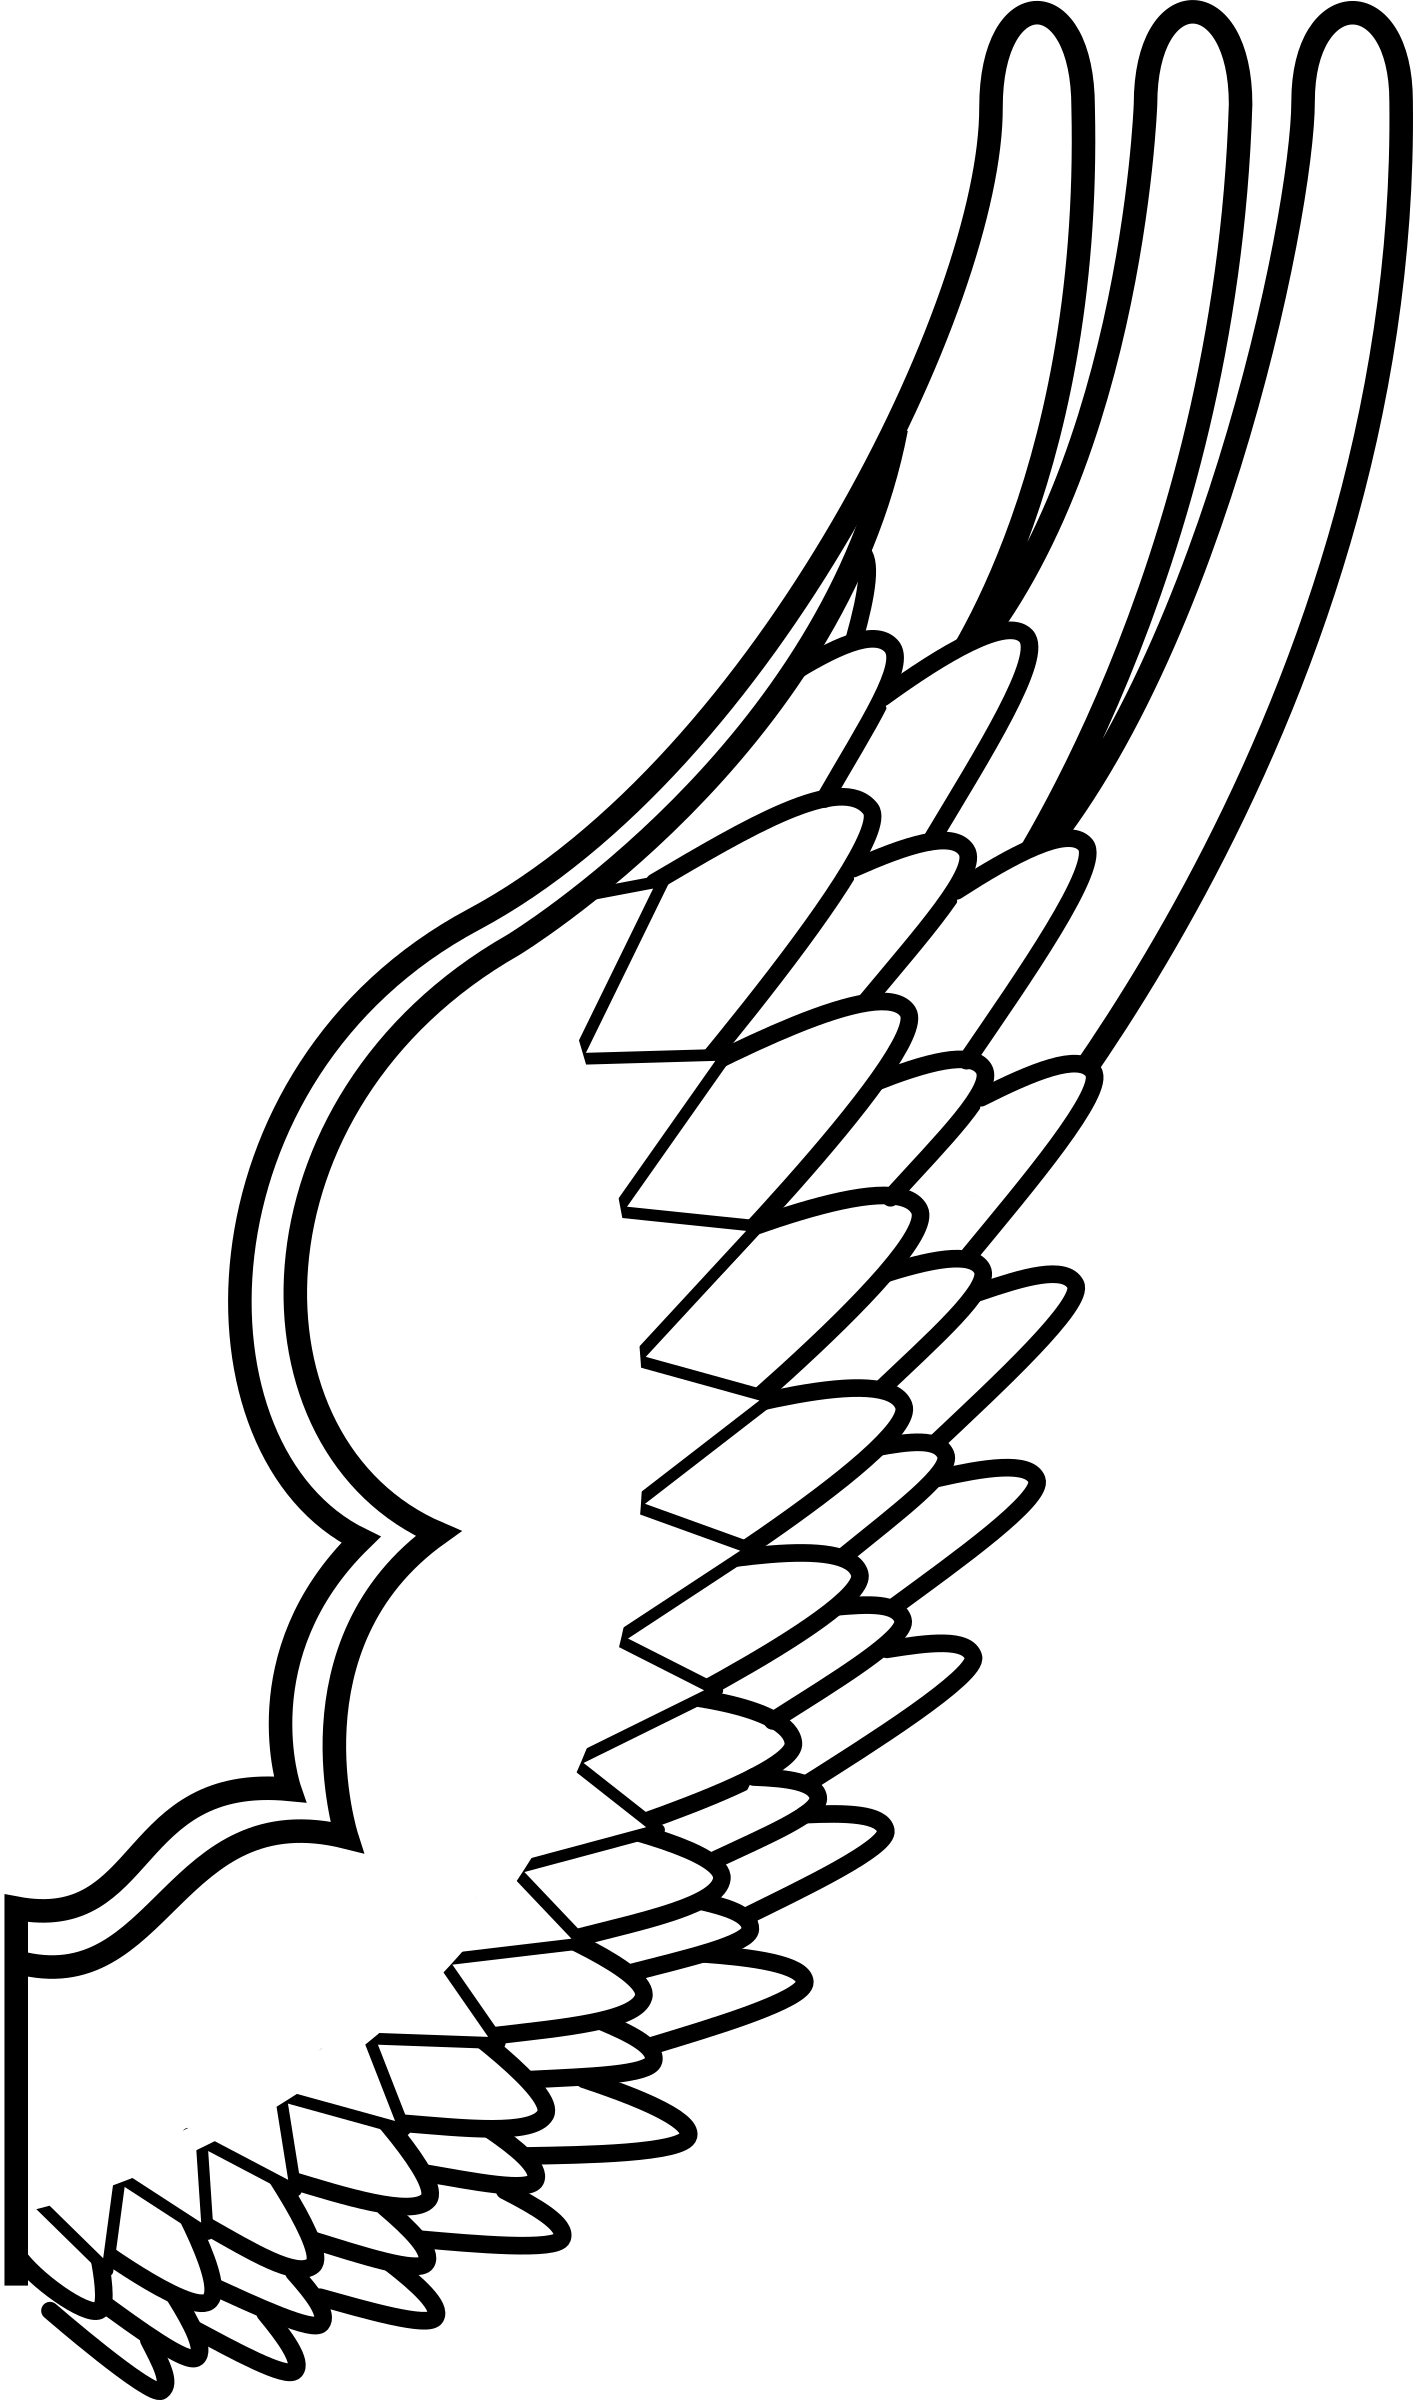 Wing drawing png. Archaic of a bird